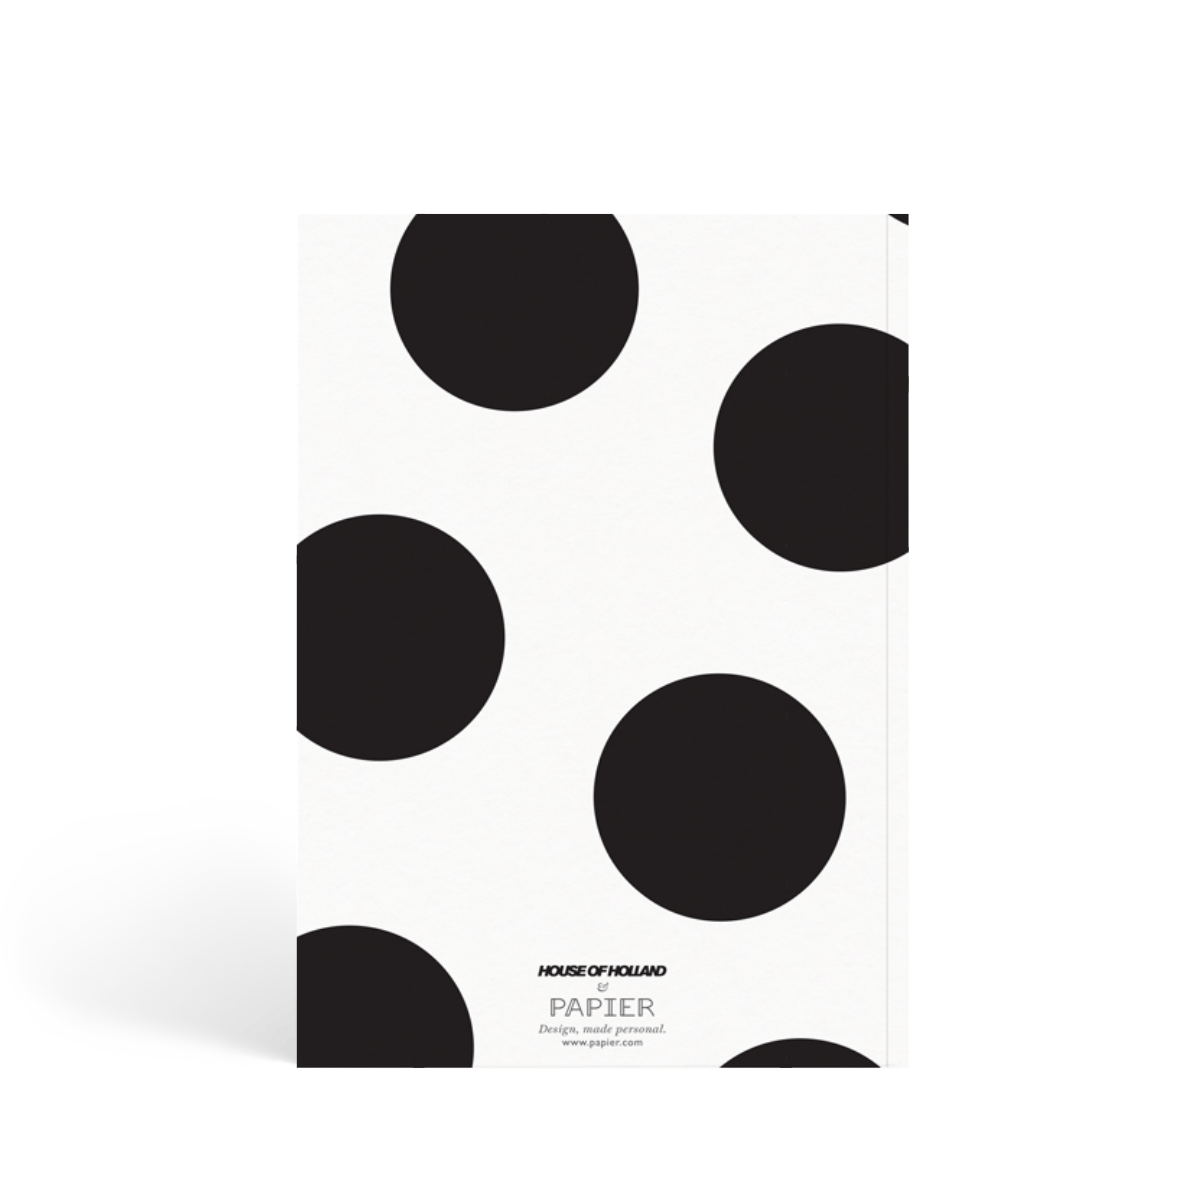 Https%3a%2f%2fwww.papier.com%2fproduct image%2f39479%2f5%2ff king polka dots 9811 back 1532962630.png?ixlib=rb 1.1